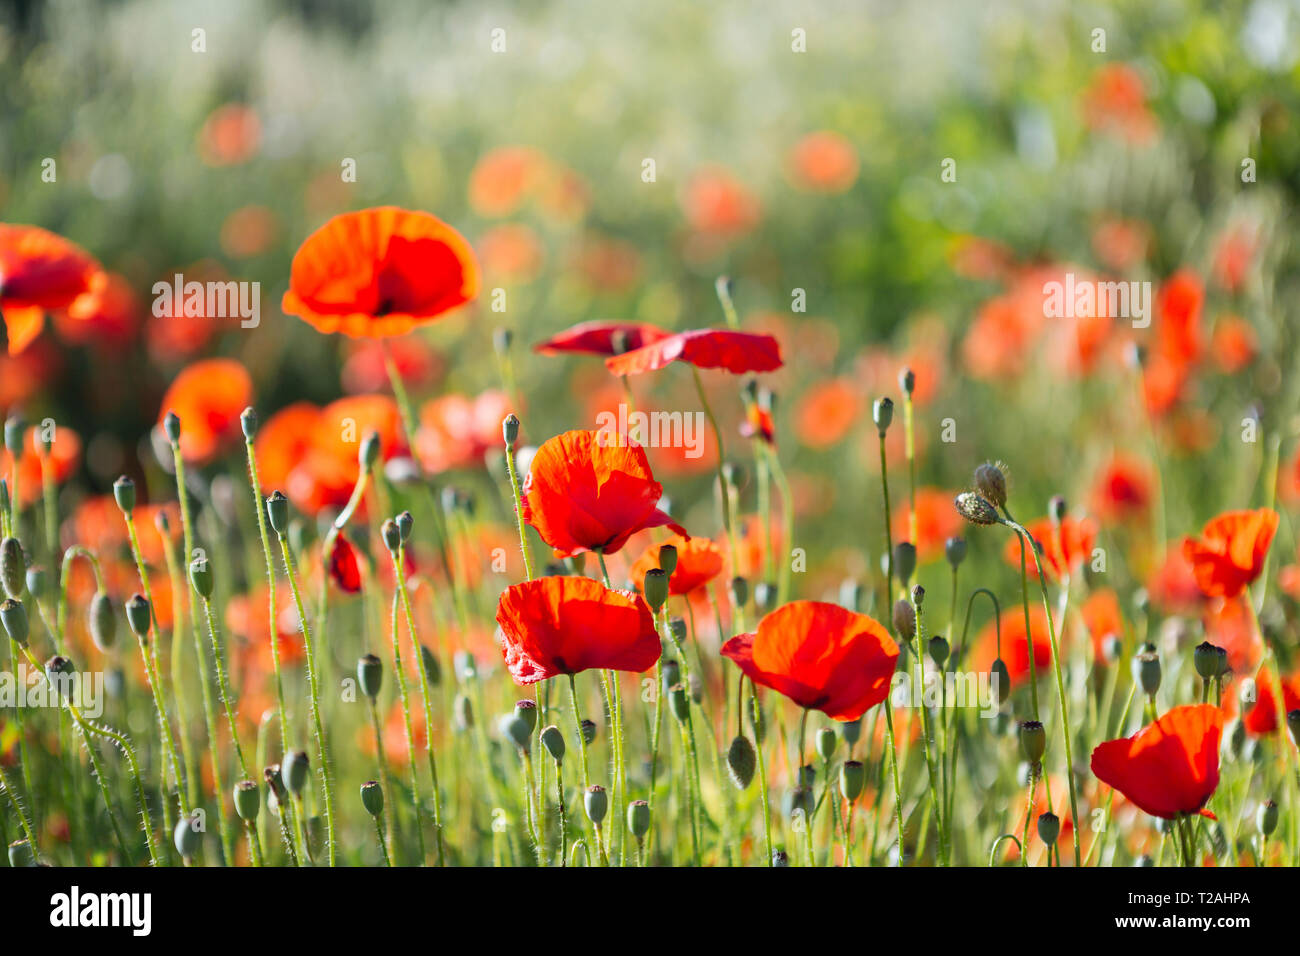 Red poppy field - Stock Image